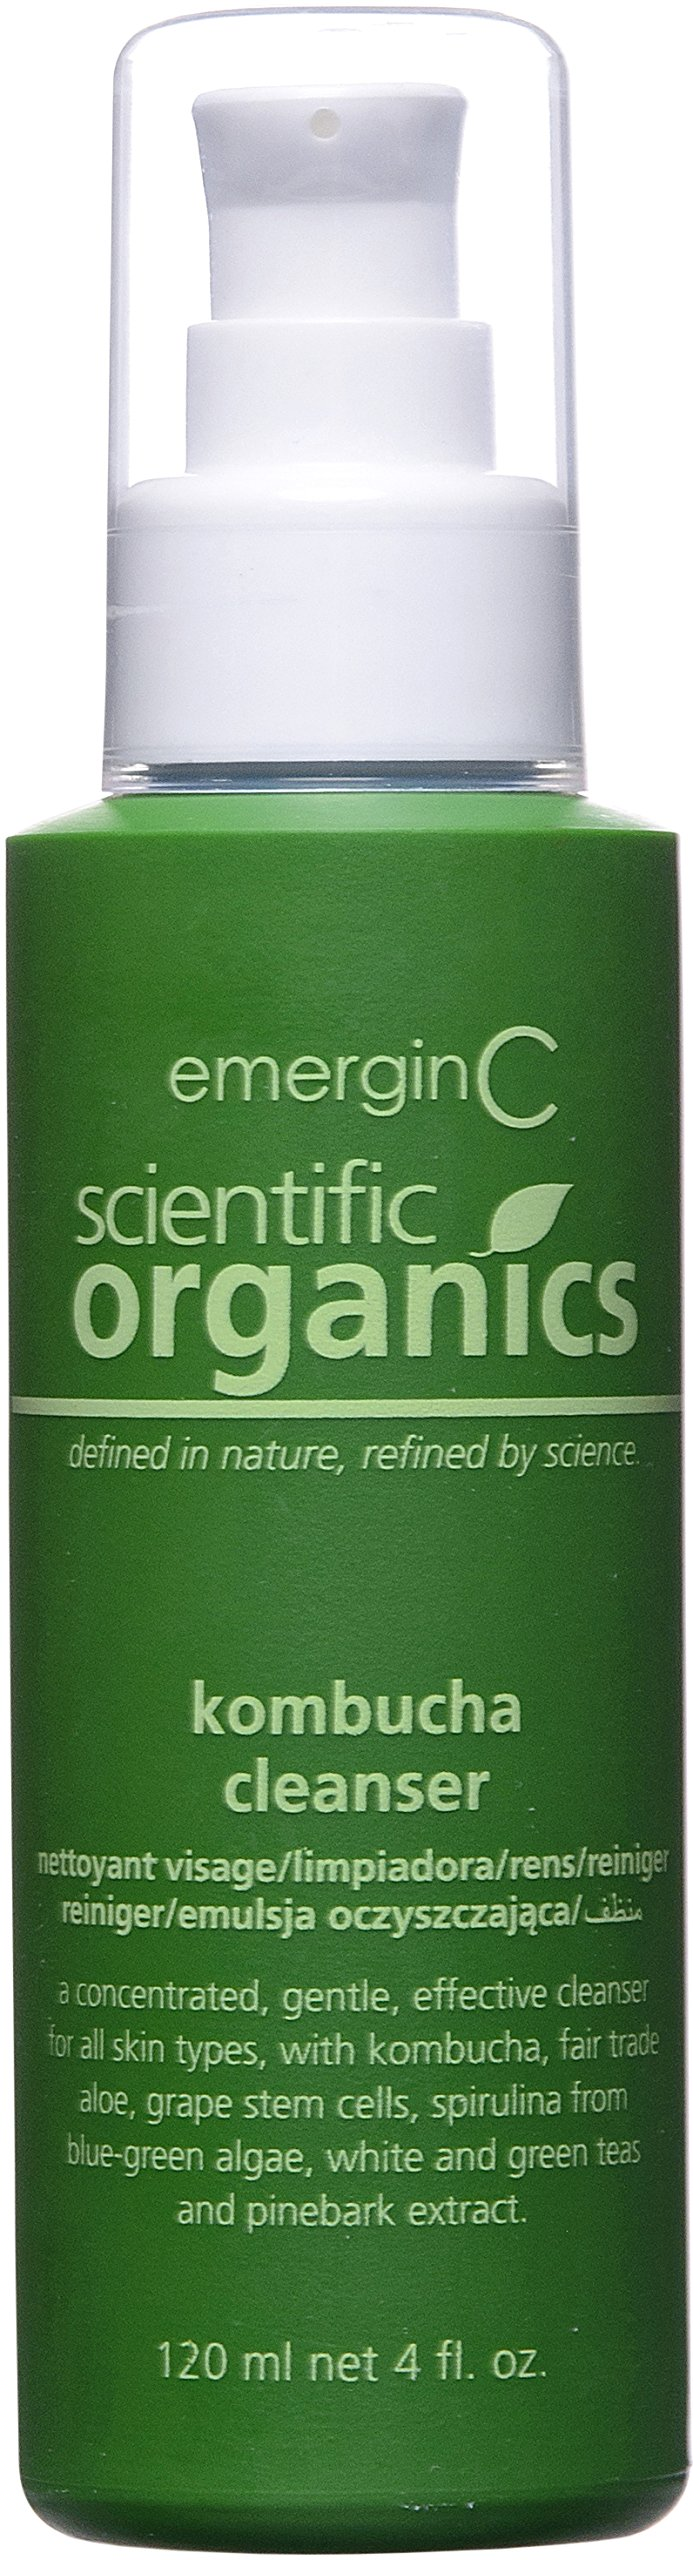 emerginC Scientific Organics - Kombucha Cleanser with Plant Stem Cells to Help Visibly Improve Tone +